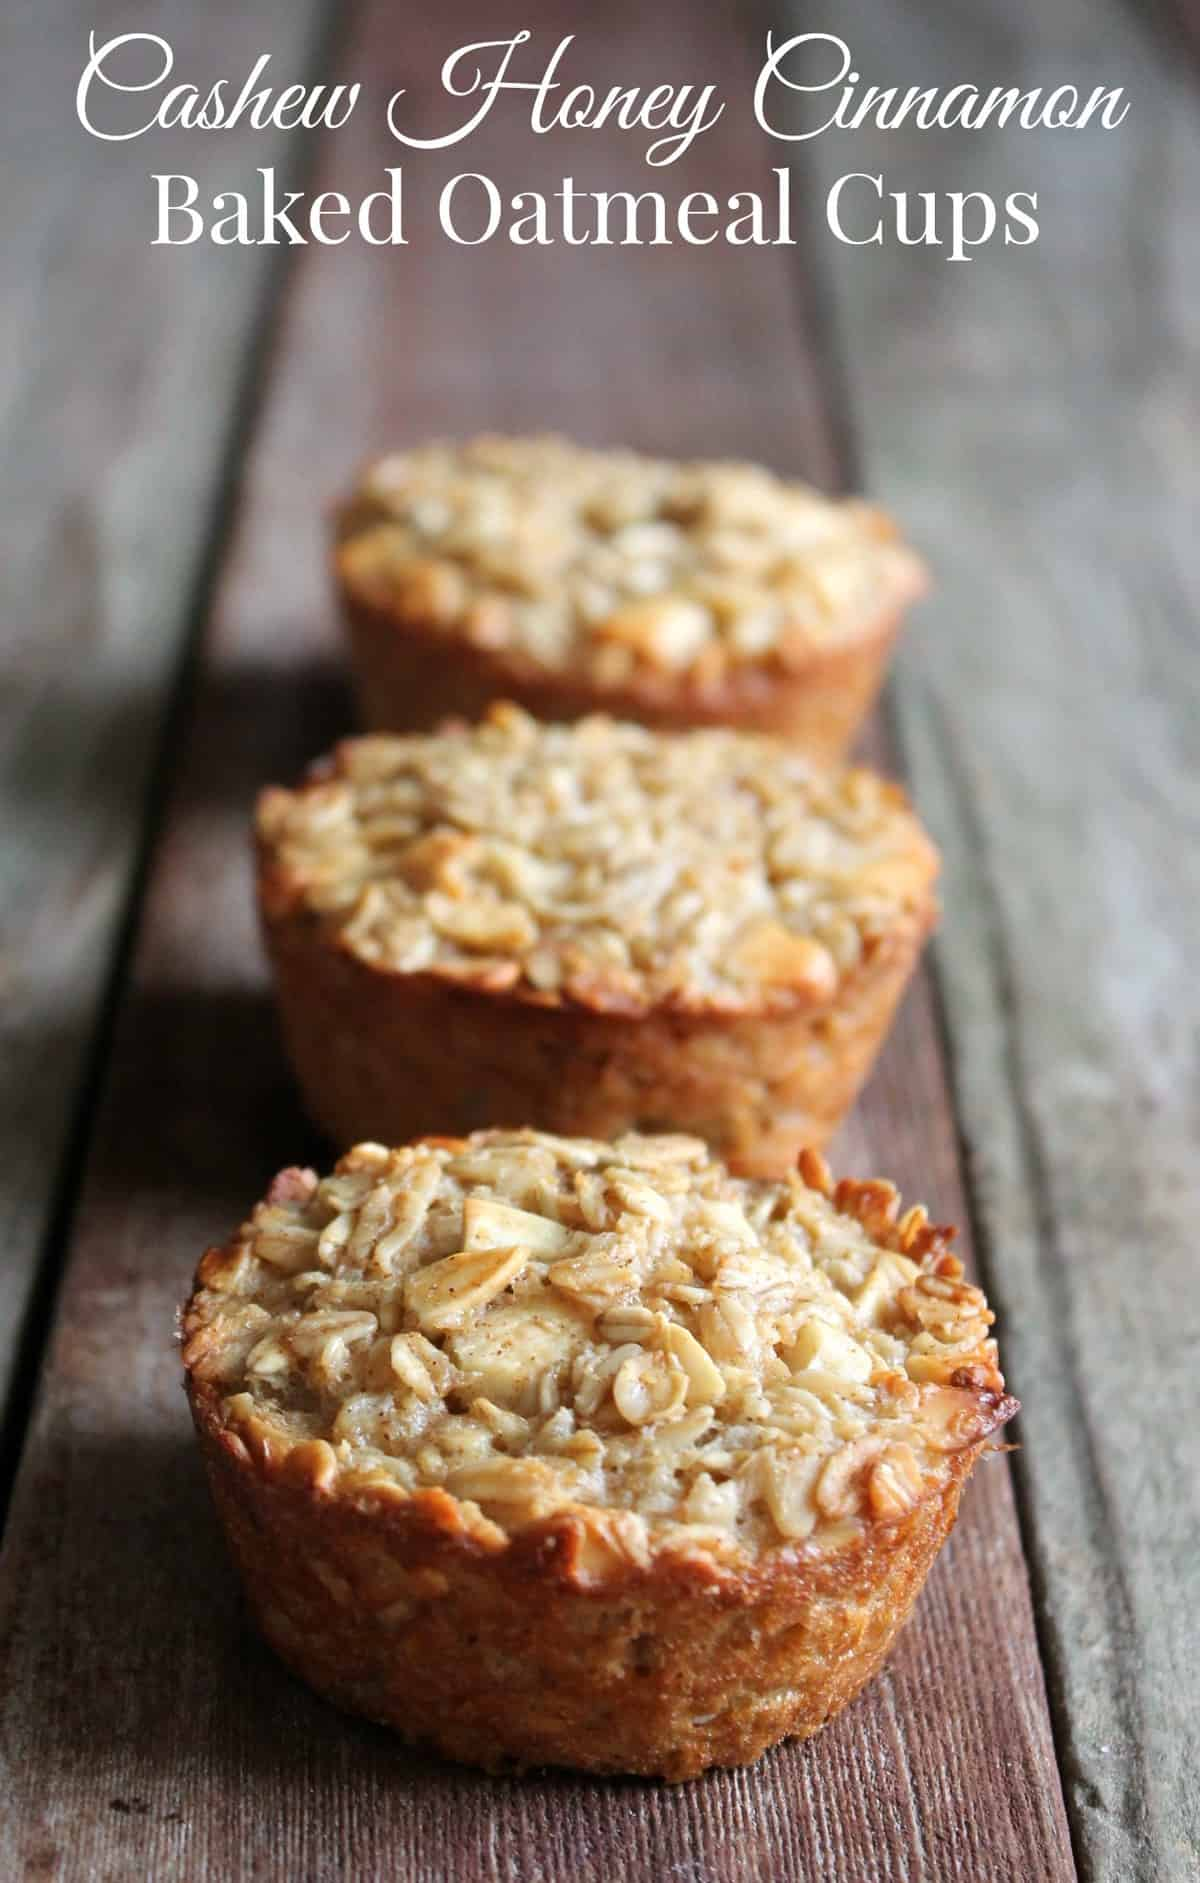 Cashew Honey Cinnamon Baked Oatmeal Cups 212 calories 6 weight watchers points plus